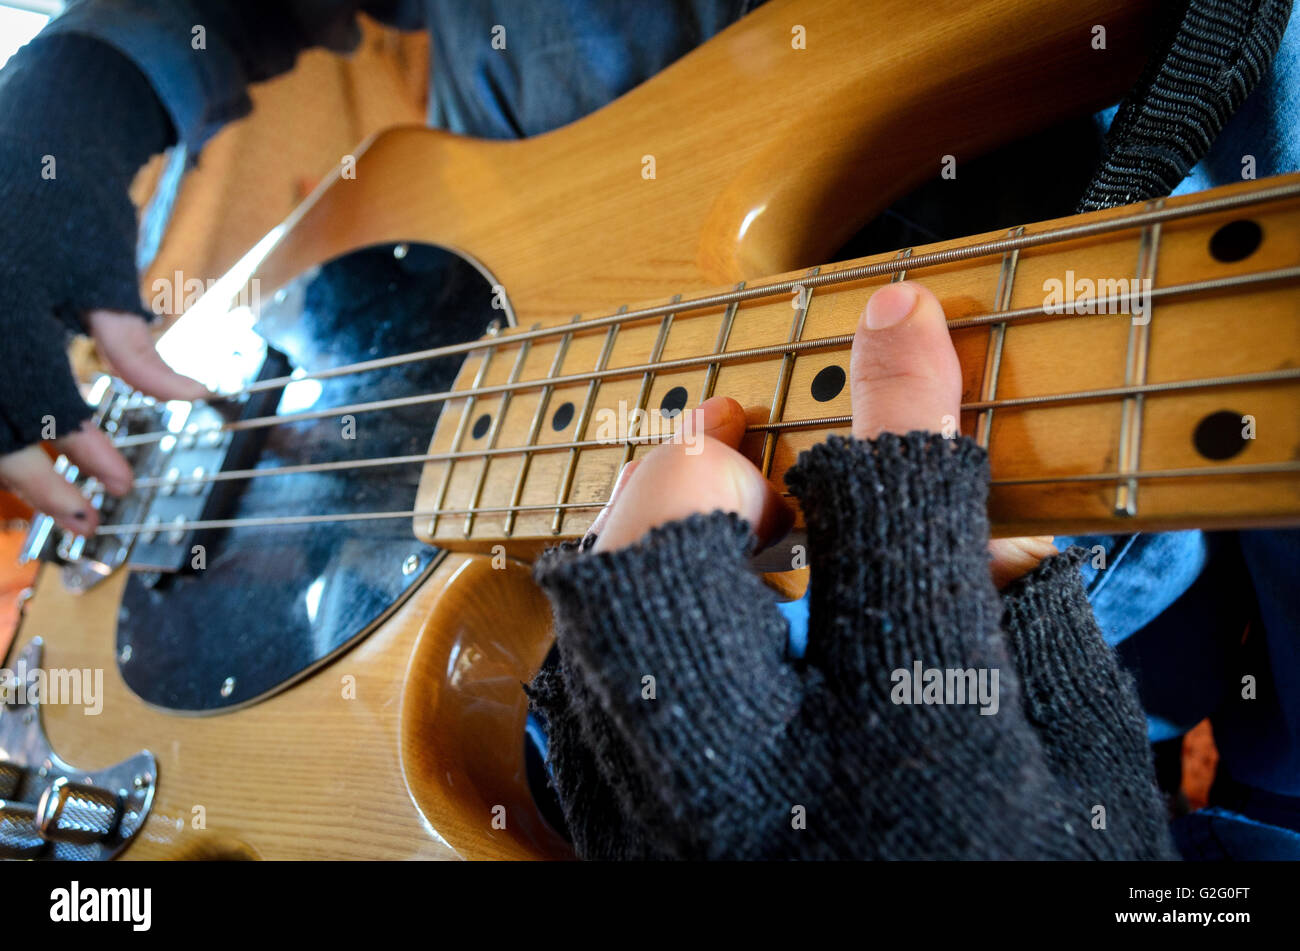 playing bass guitar wearing fingerless gloves stock photo 104843196 alamy. Black Bedroom Furniture Sets. Home Design Ideas